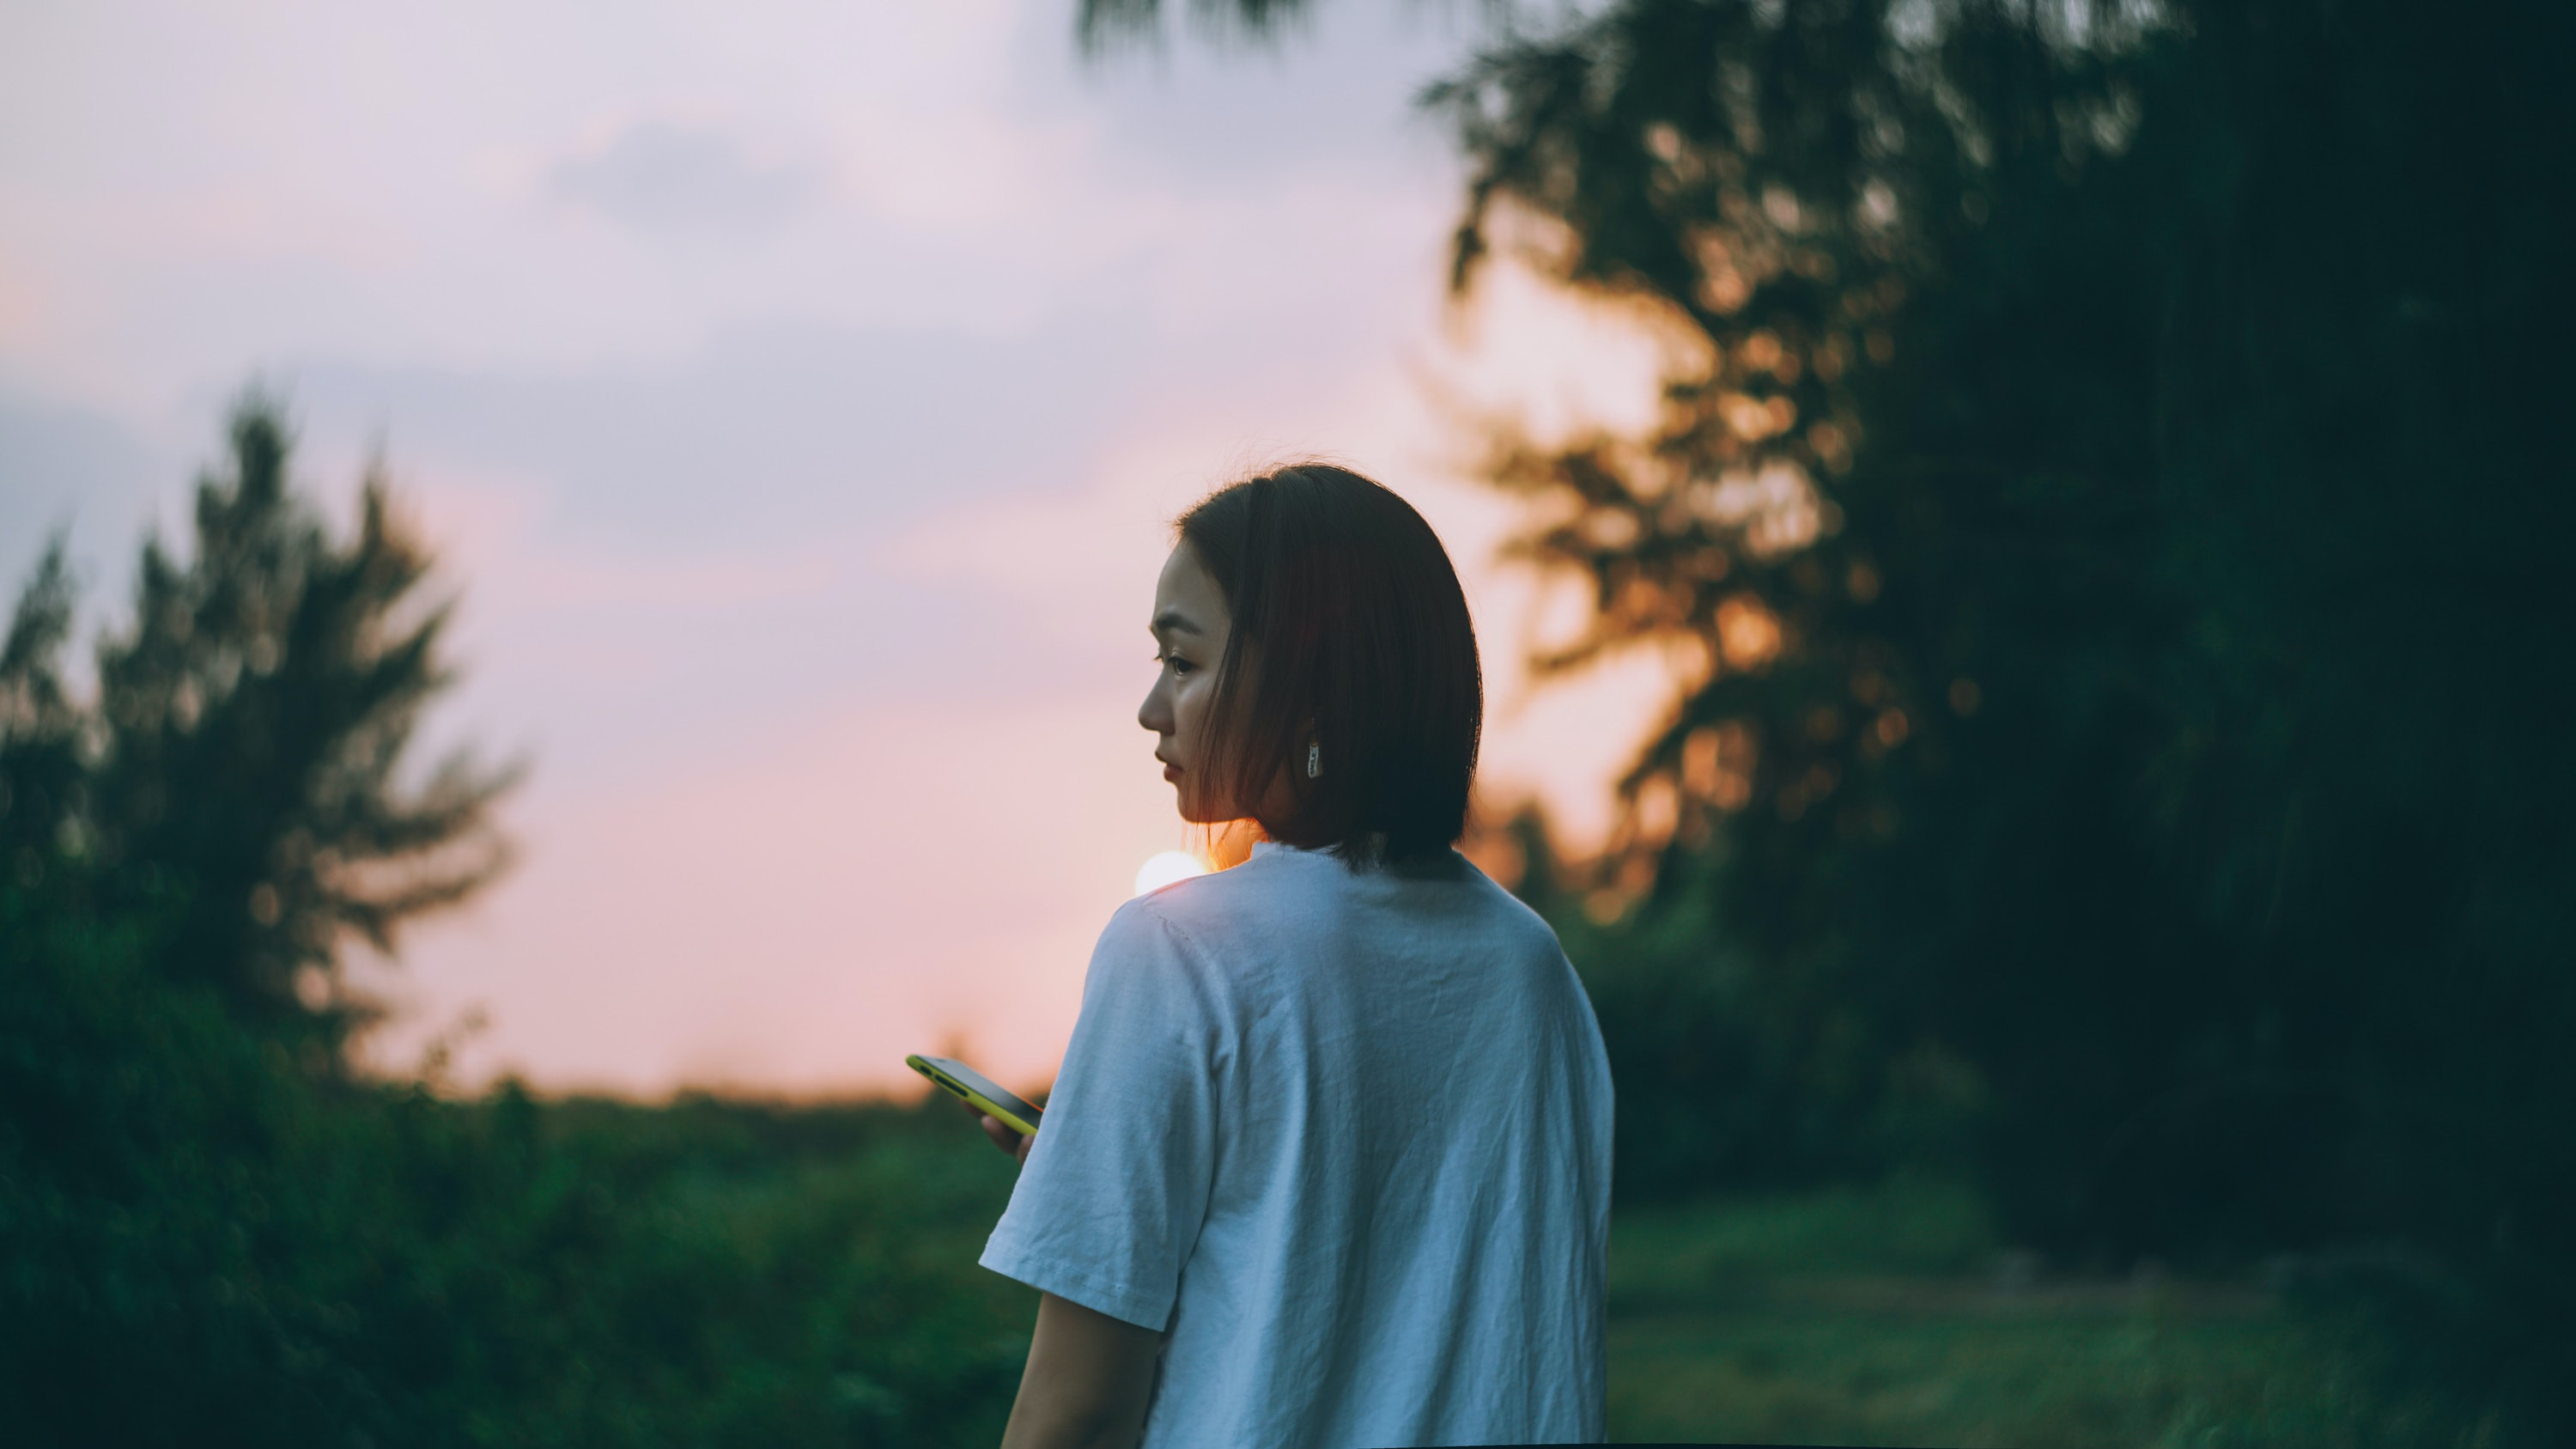 silhouette photography of woman standing near tree